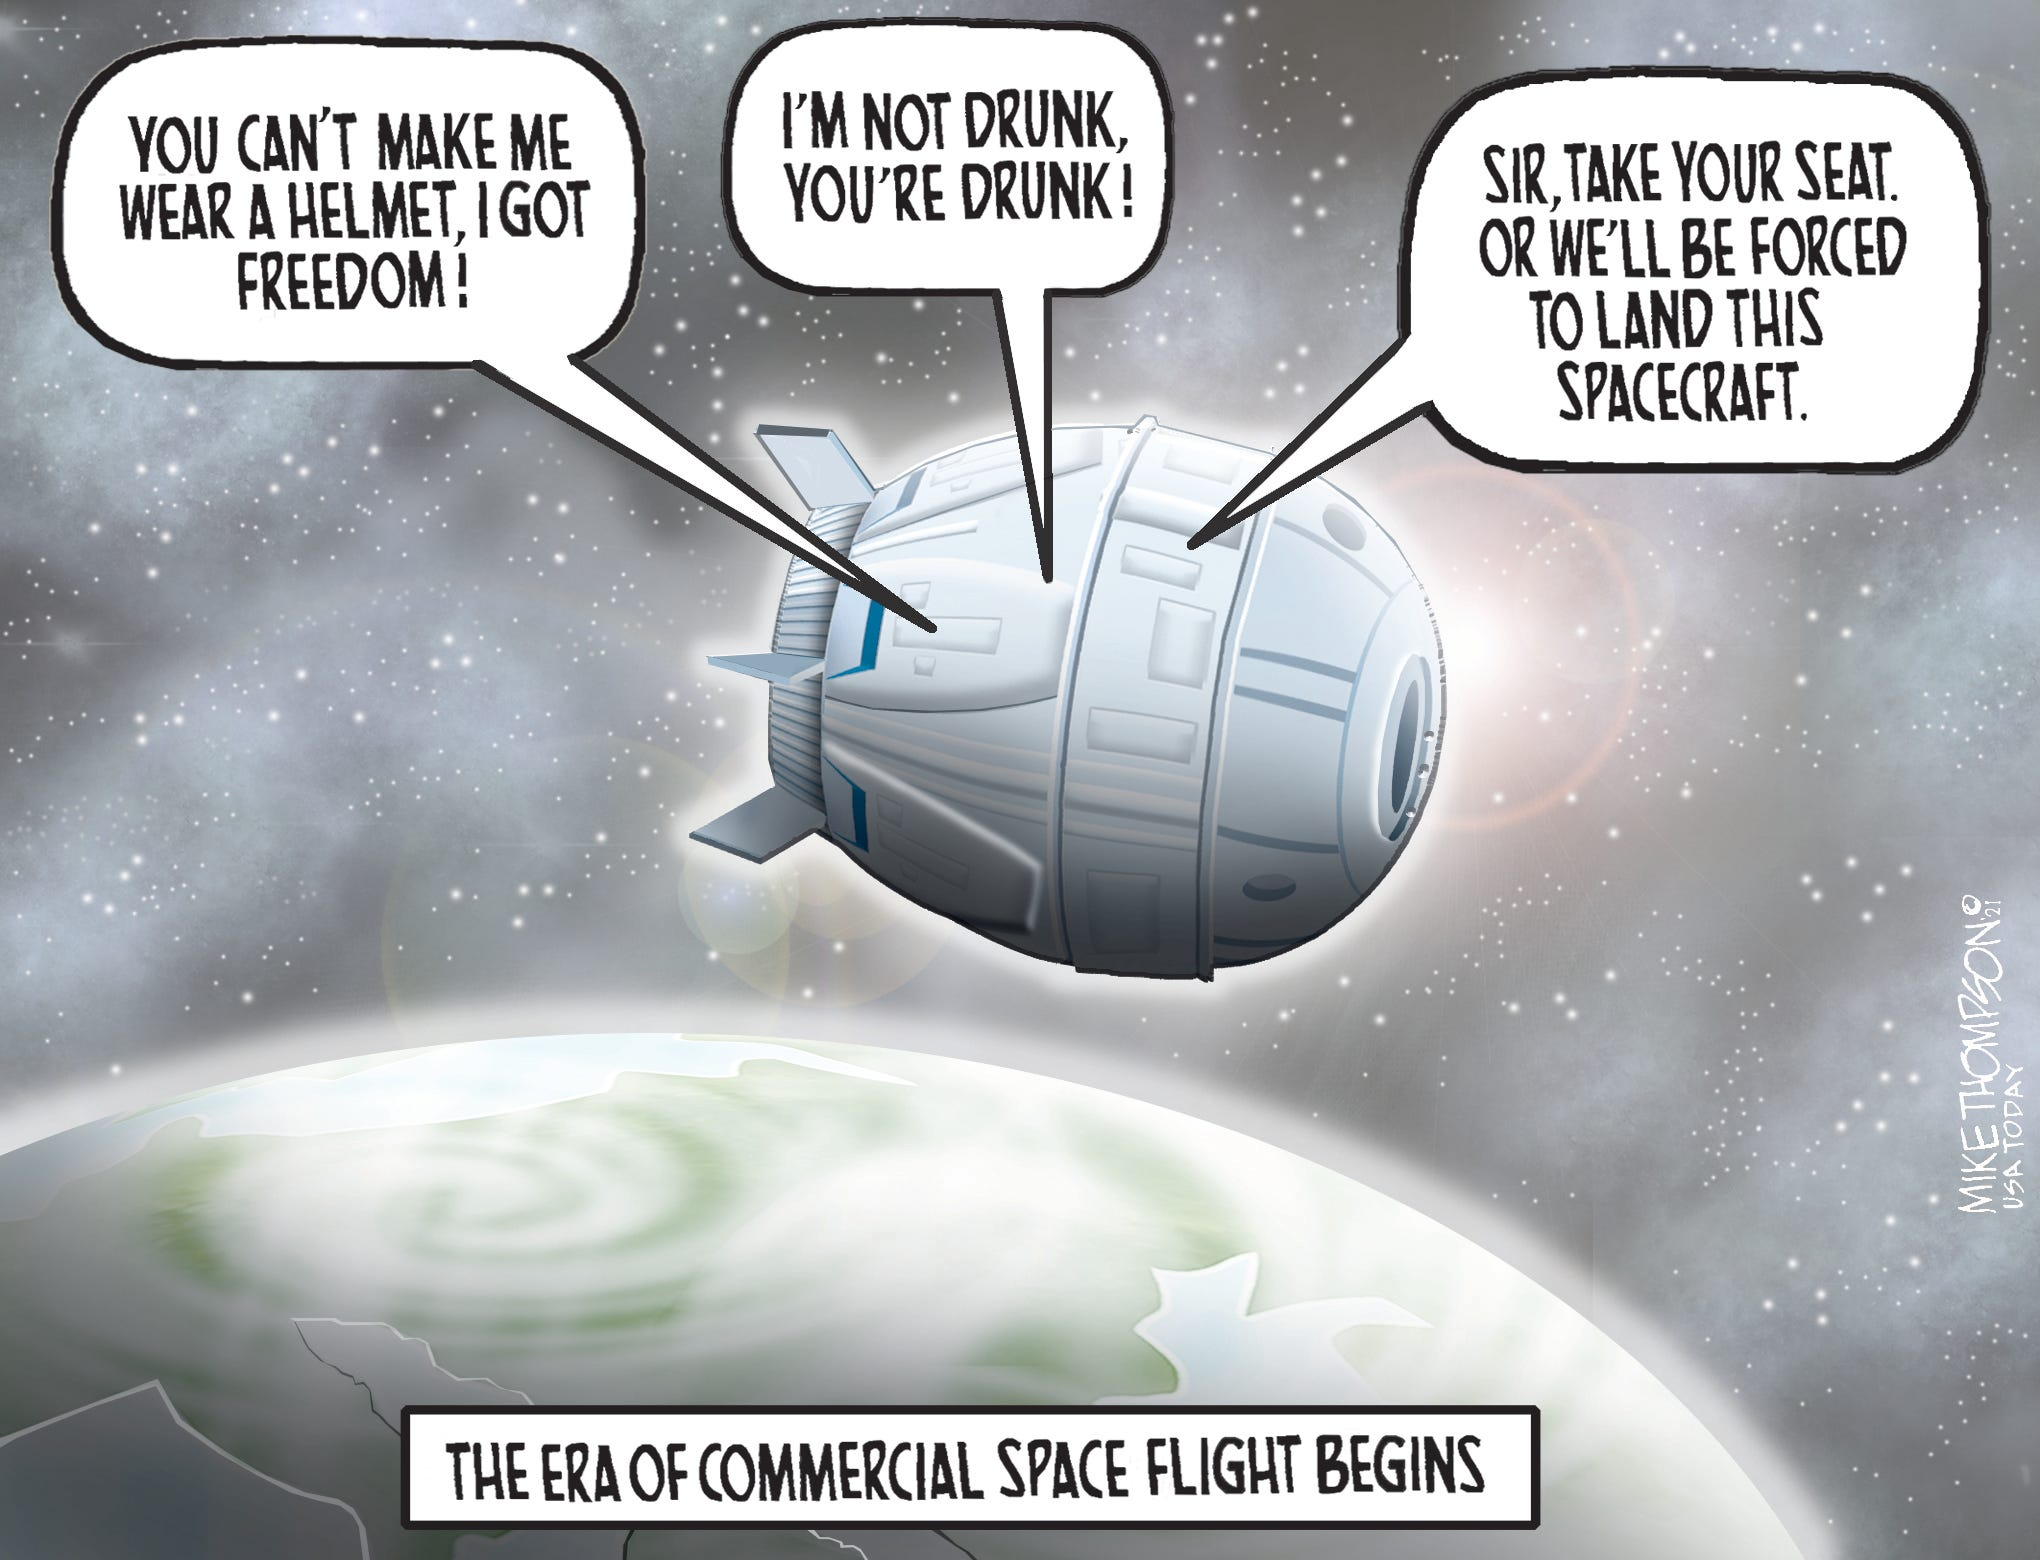 Caption:  The era of commercial space flight begins.  Image:  Voices coming from space capsule: